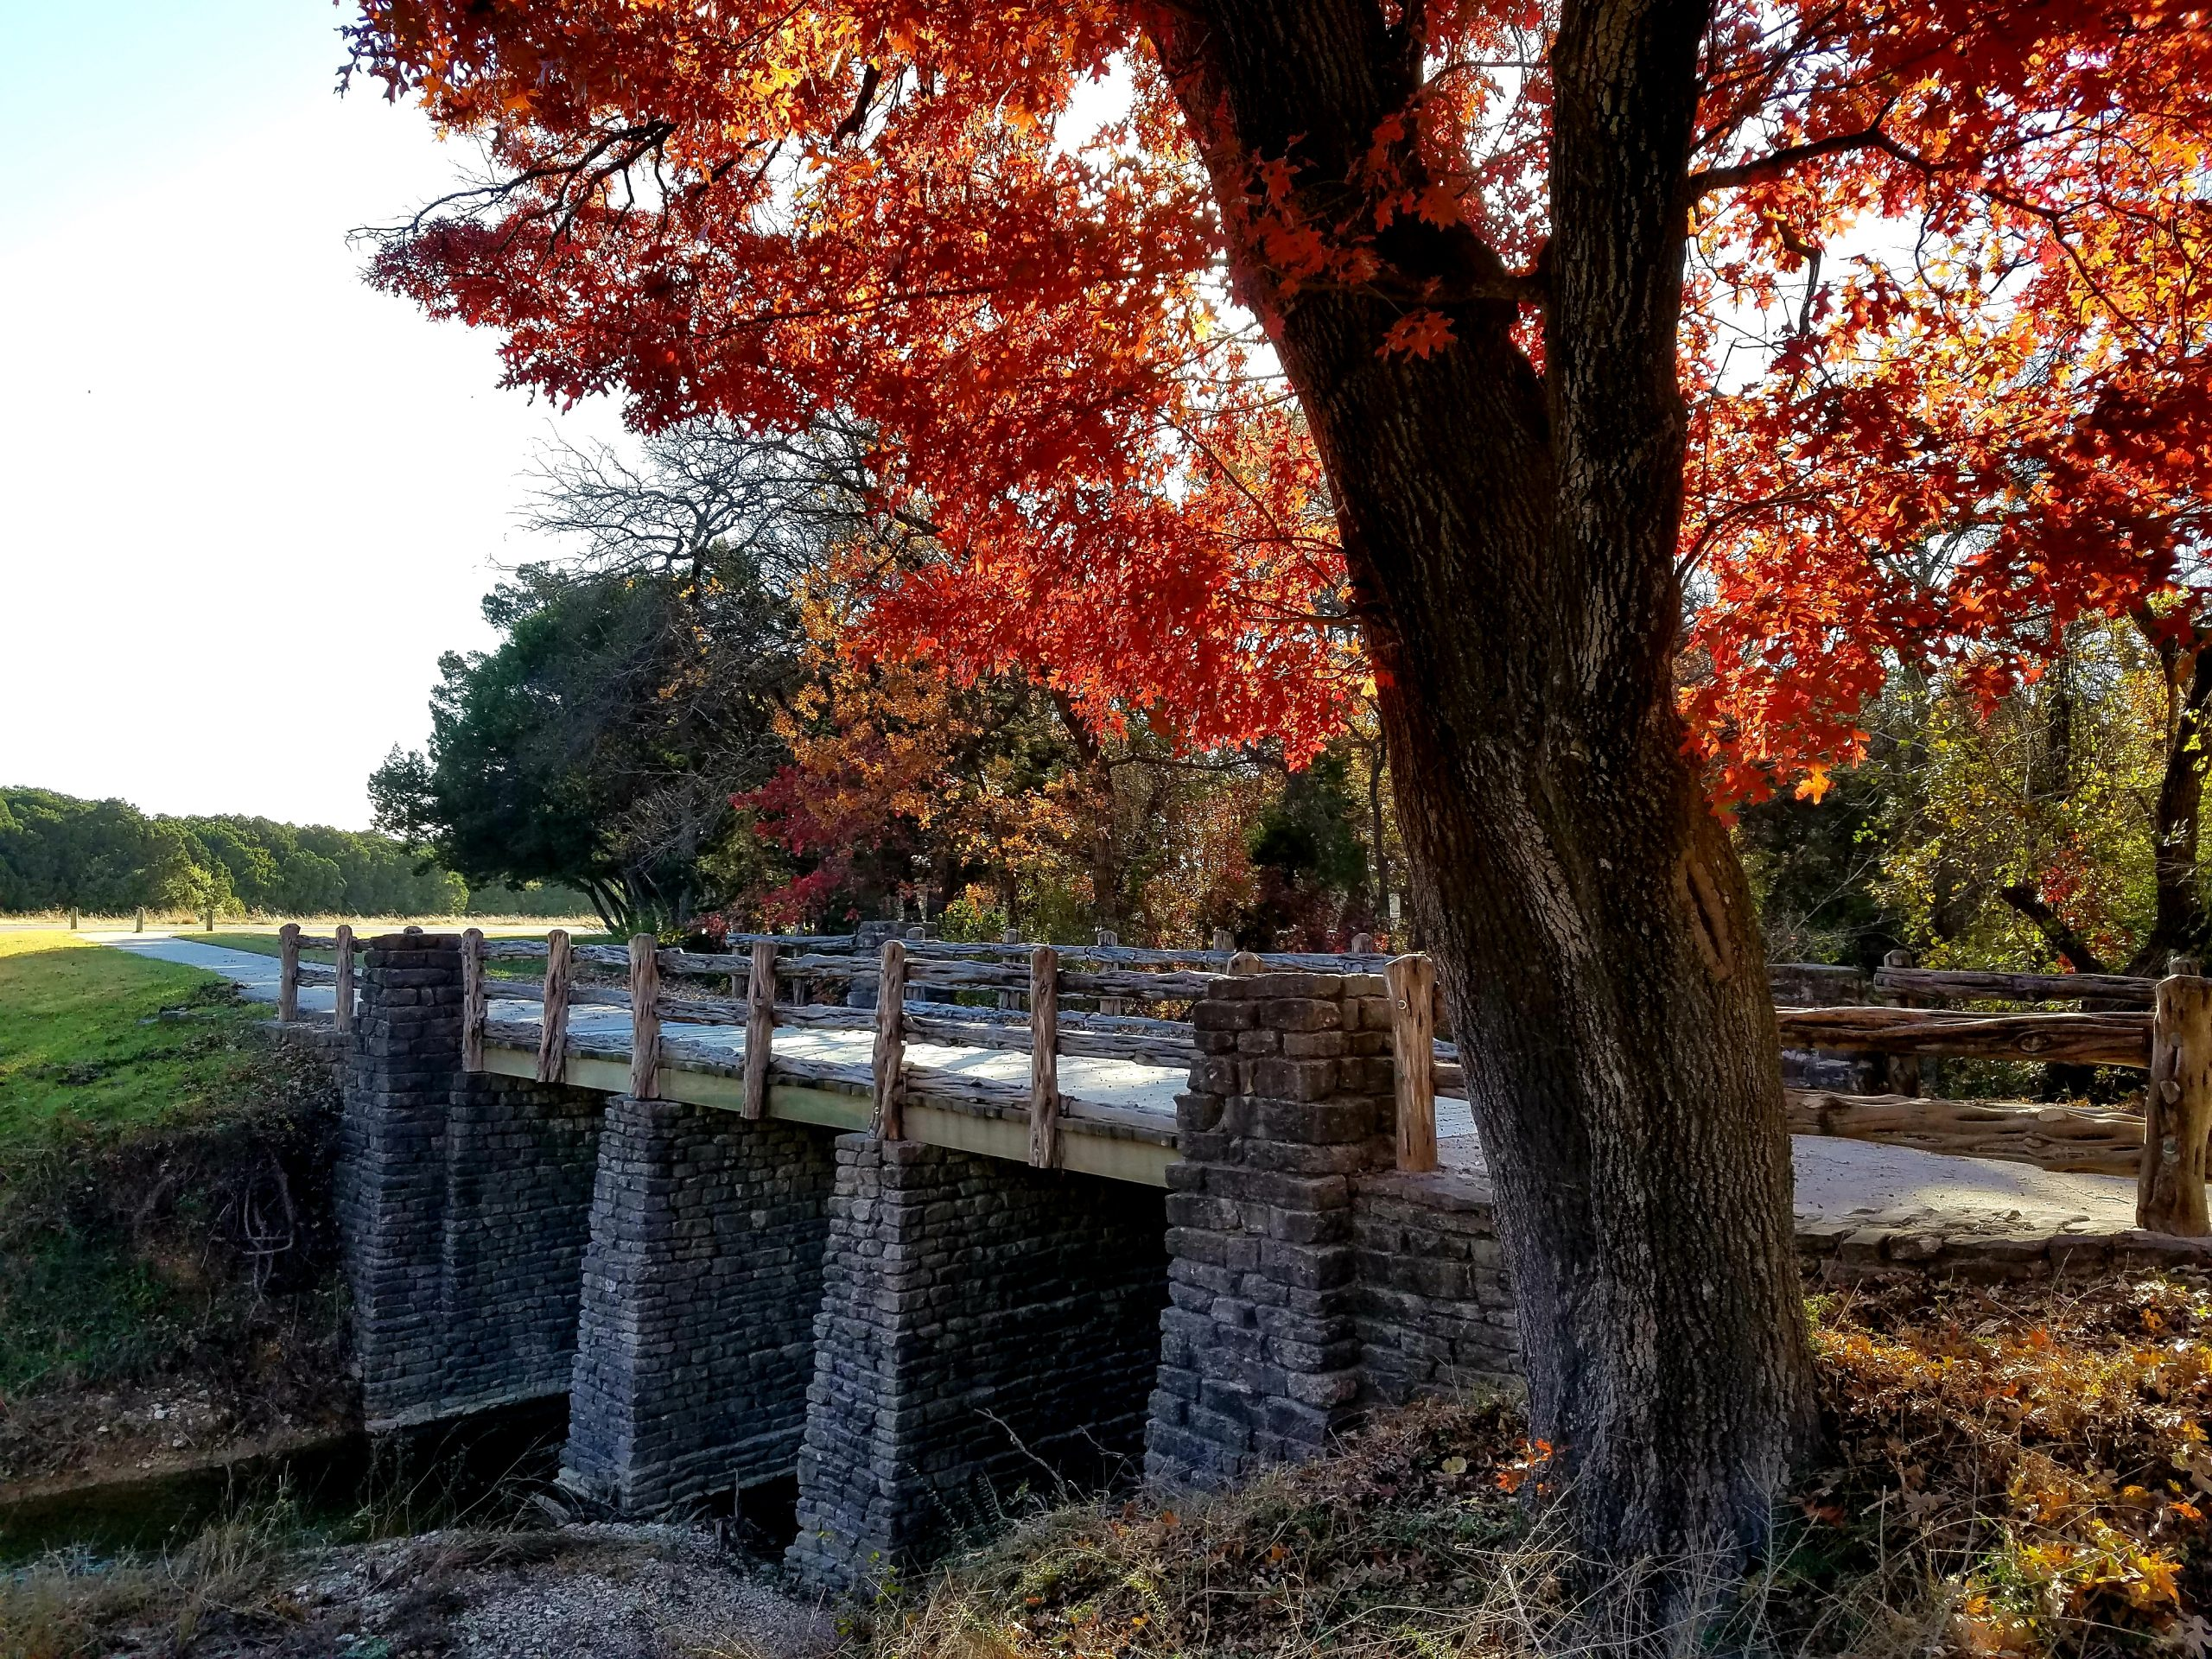 Bridge in Cleburne State Park with a tree boasting fall foliage in the foreground. This state park is home to some of the best hikes near Dallas TX